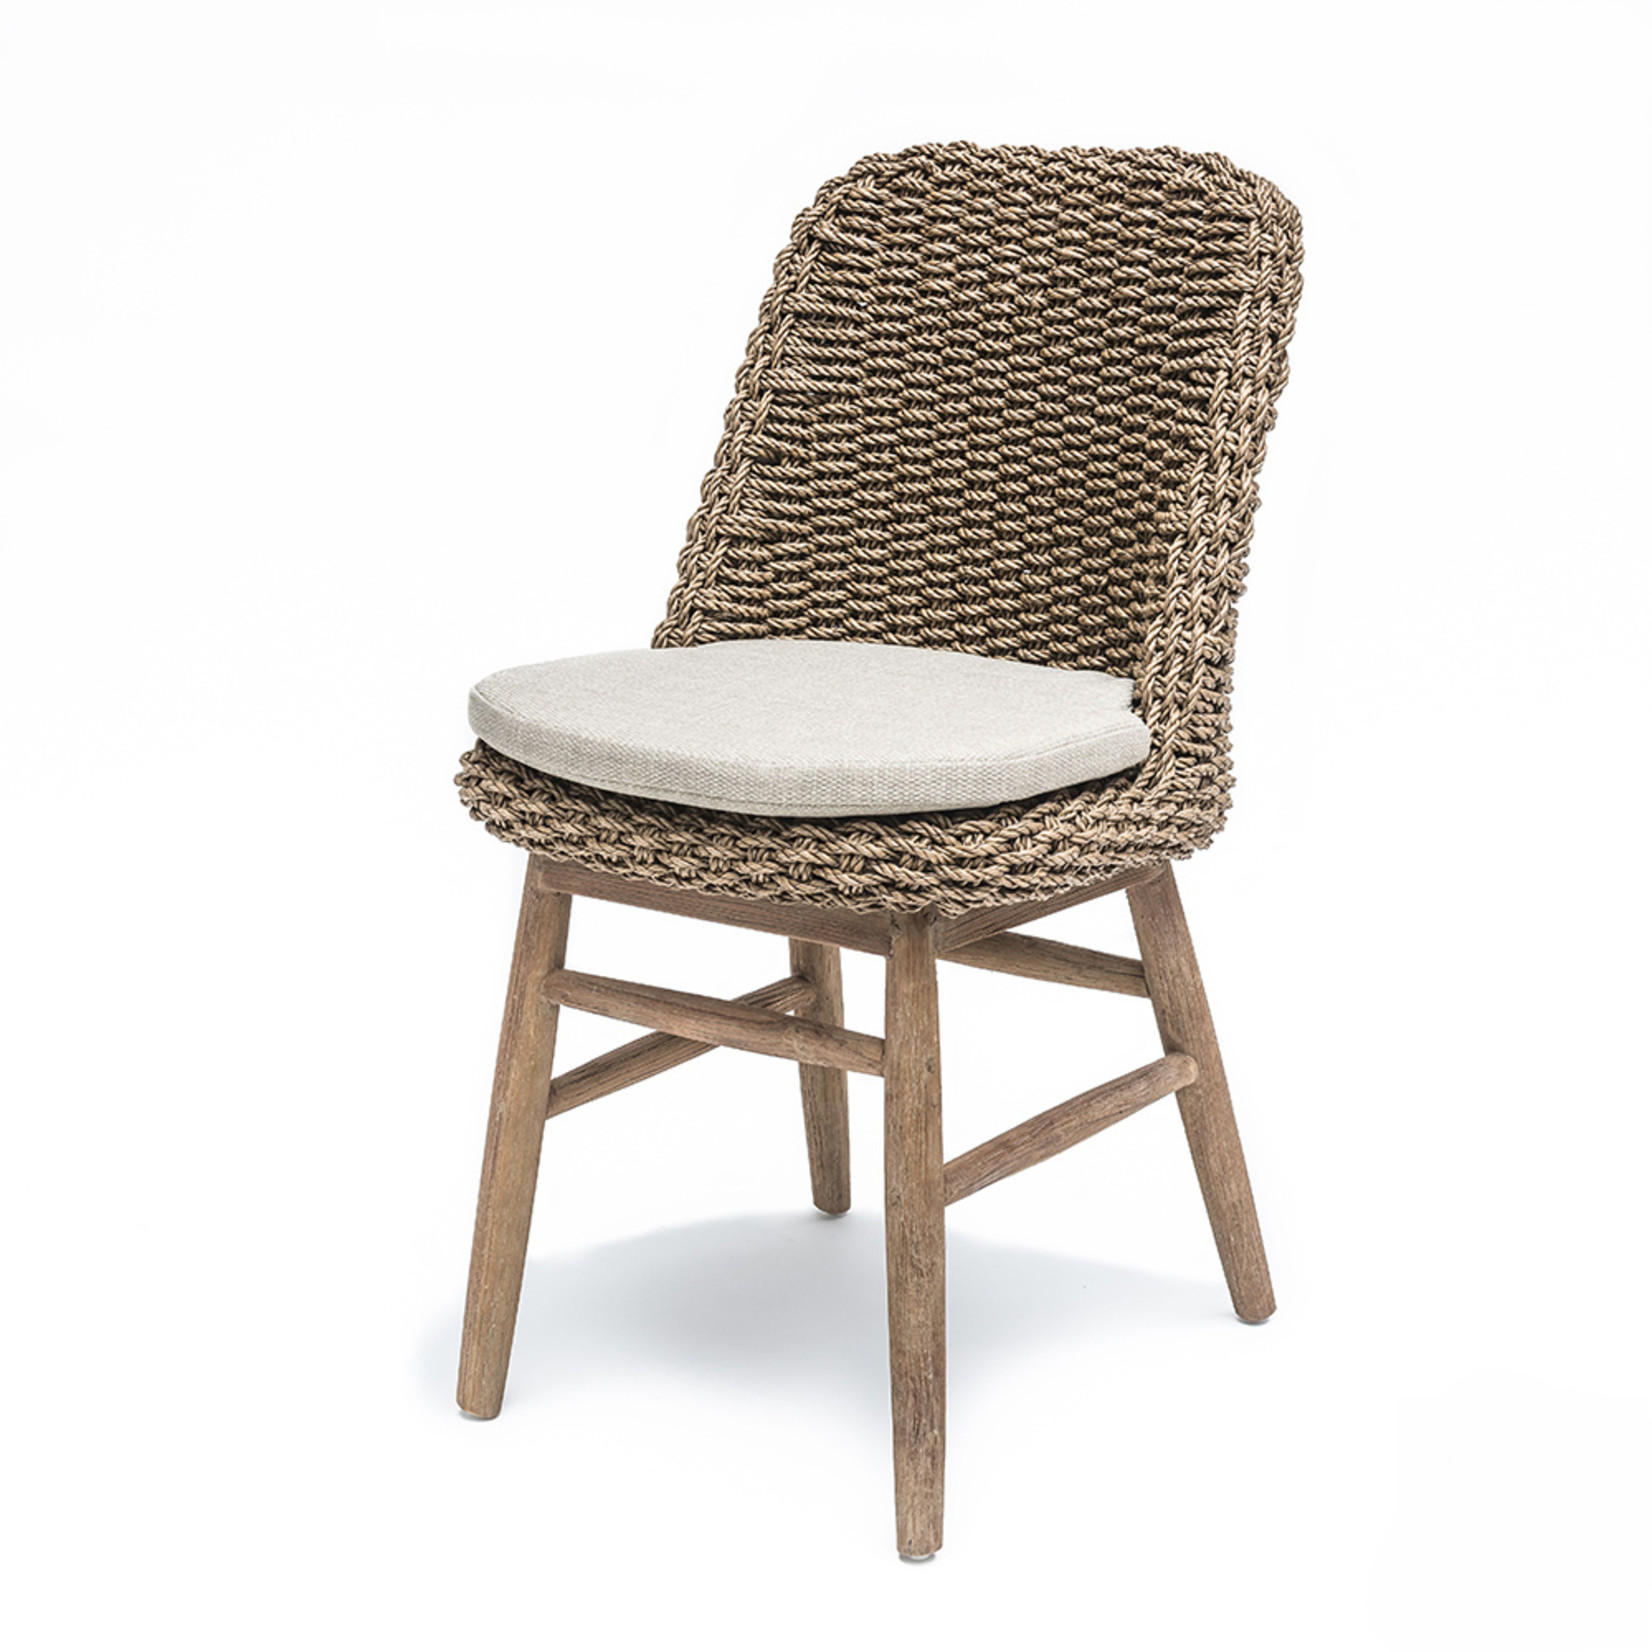 Gommaire Chair Sienna   Reclaimed Teak Natural Grey / PE Wicker Natural